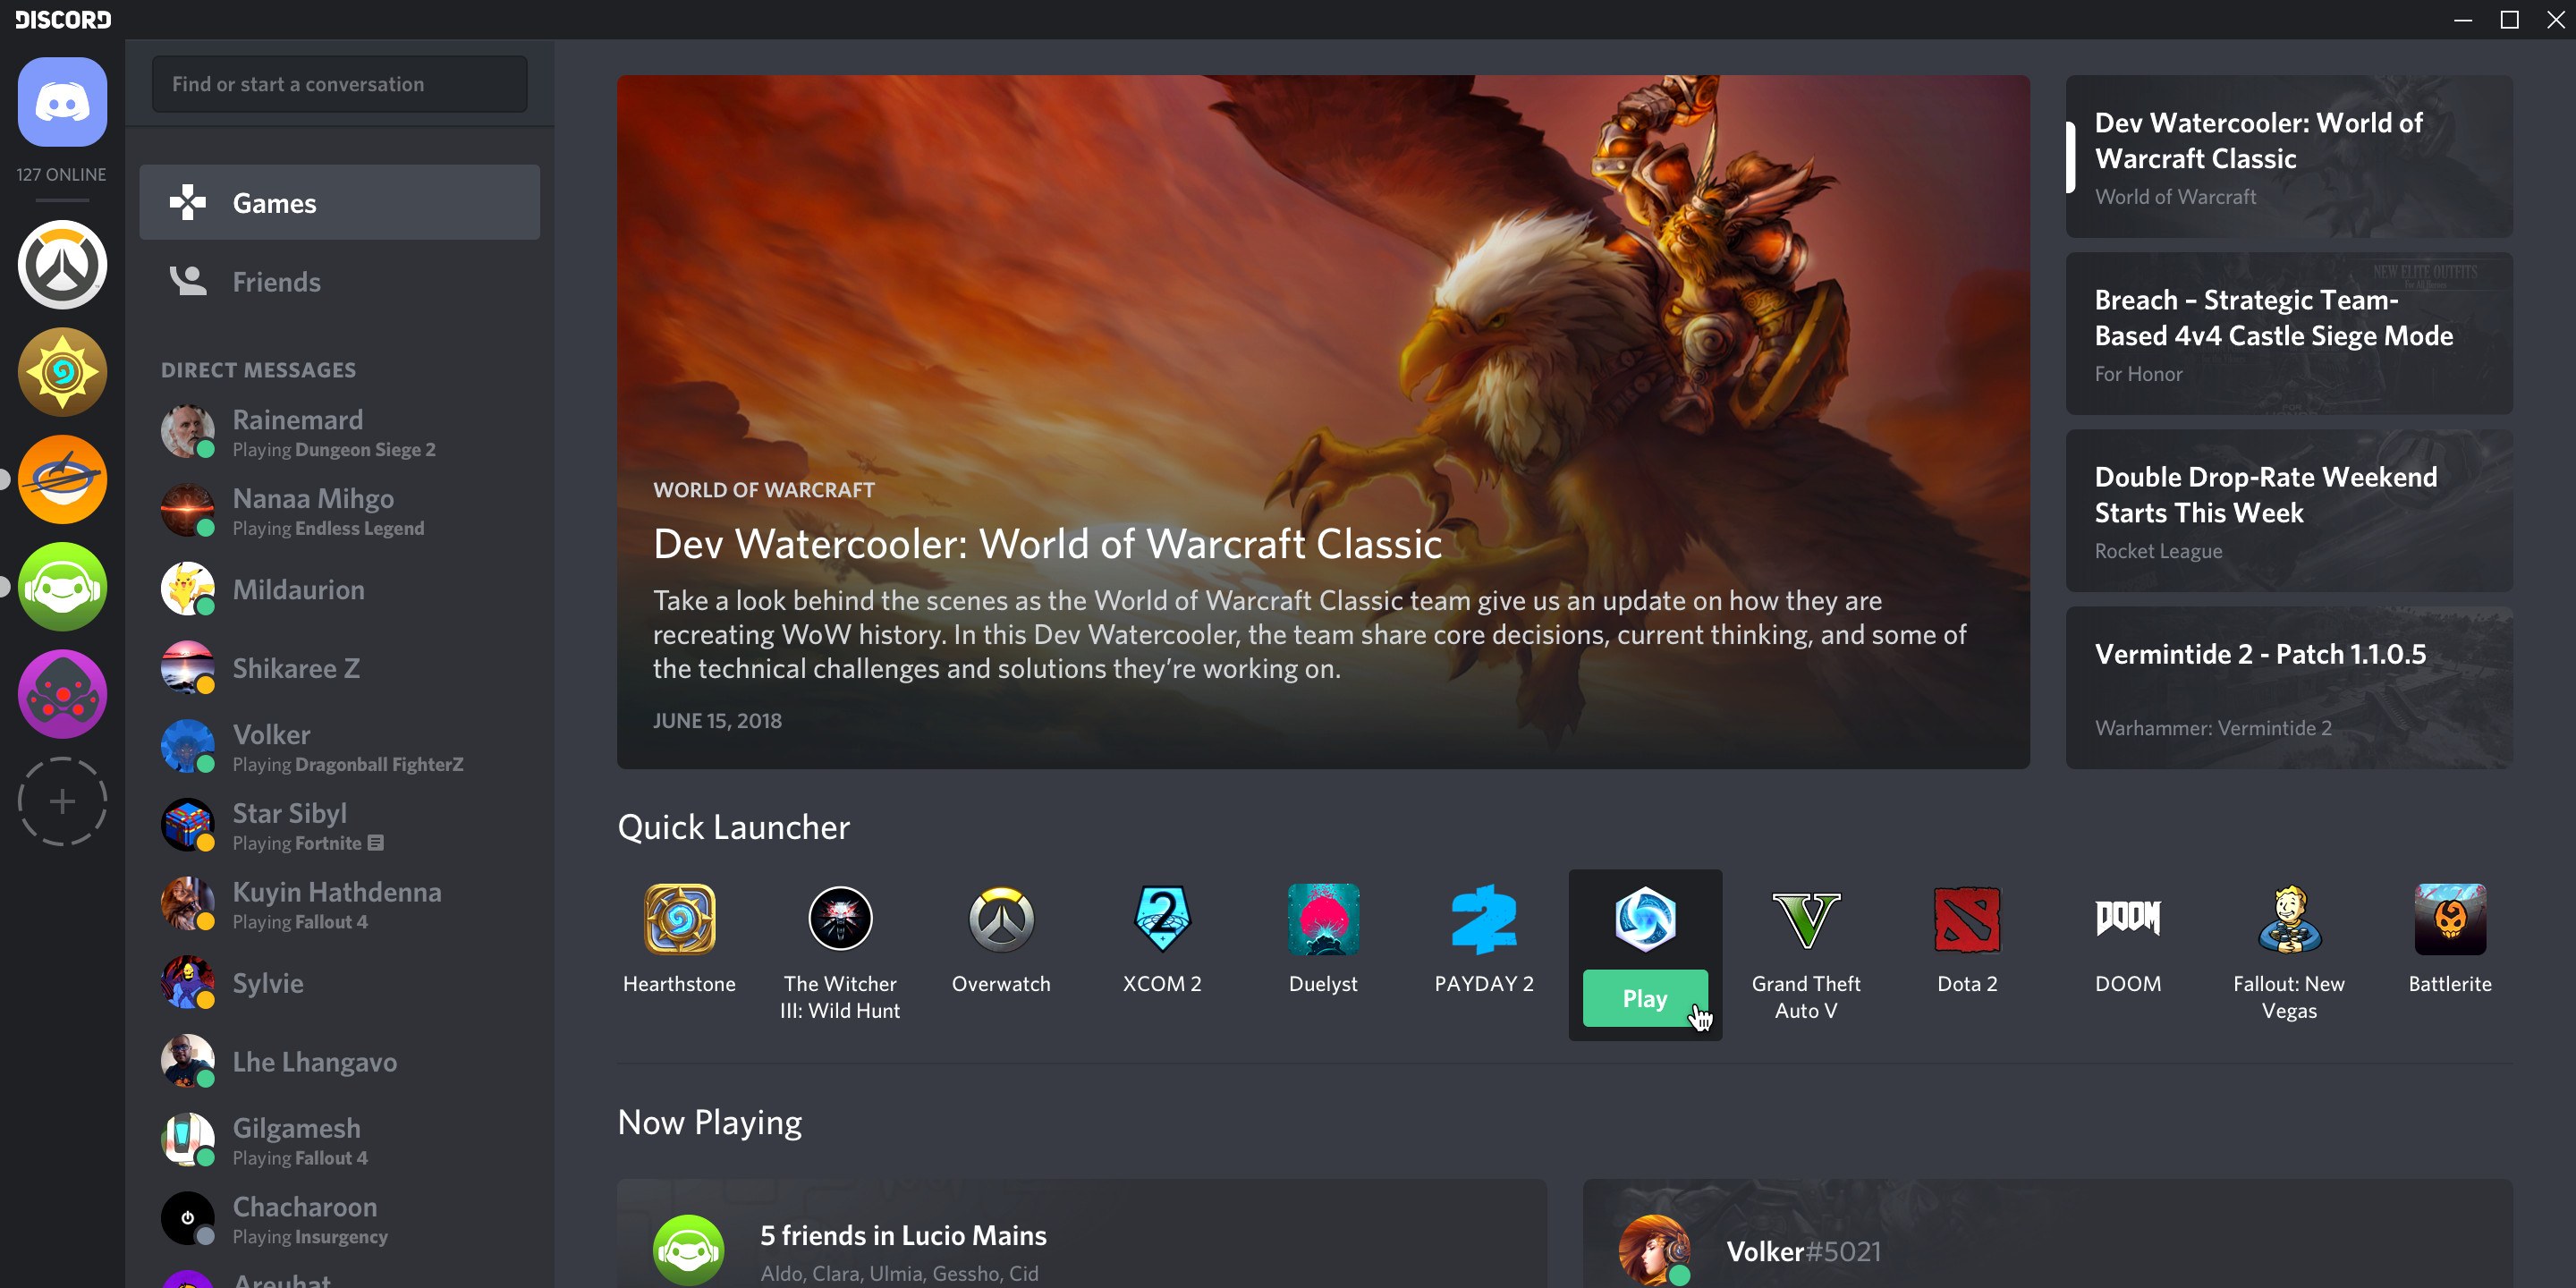 Discord will offer game streaming tools, but broadcasts are